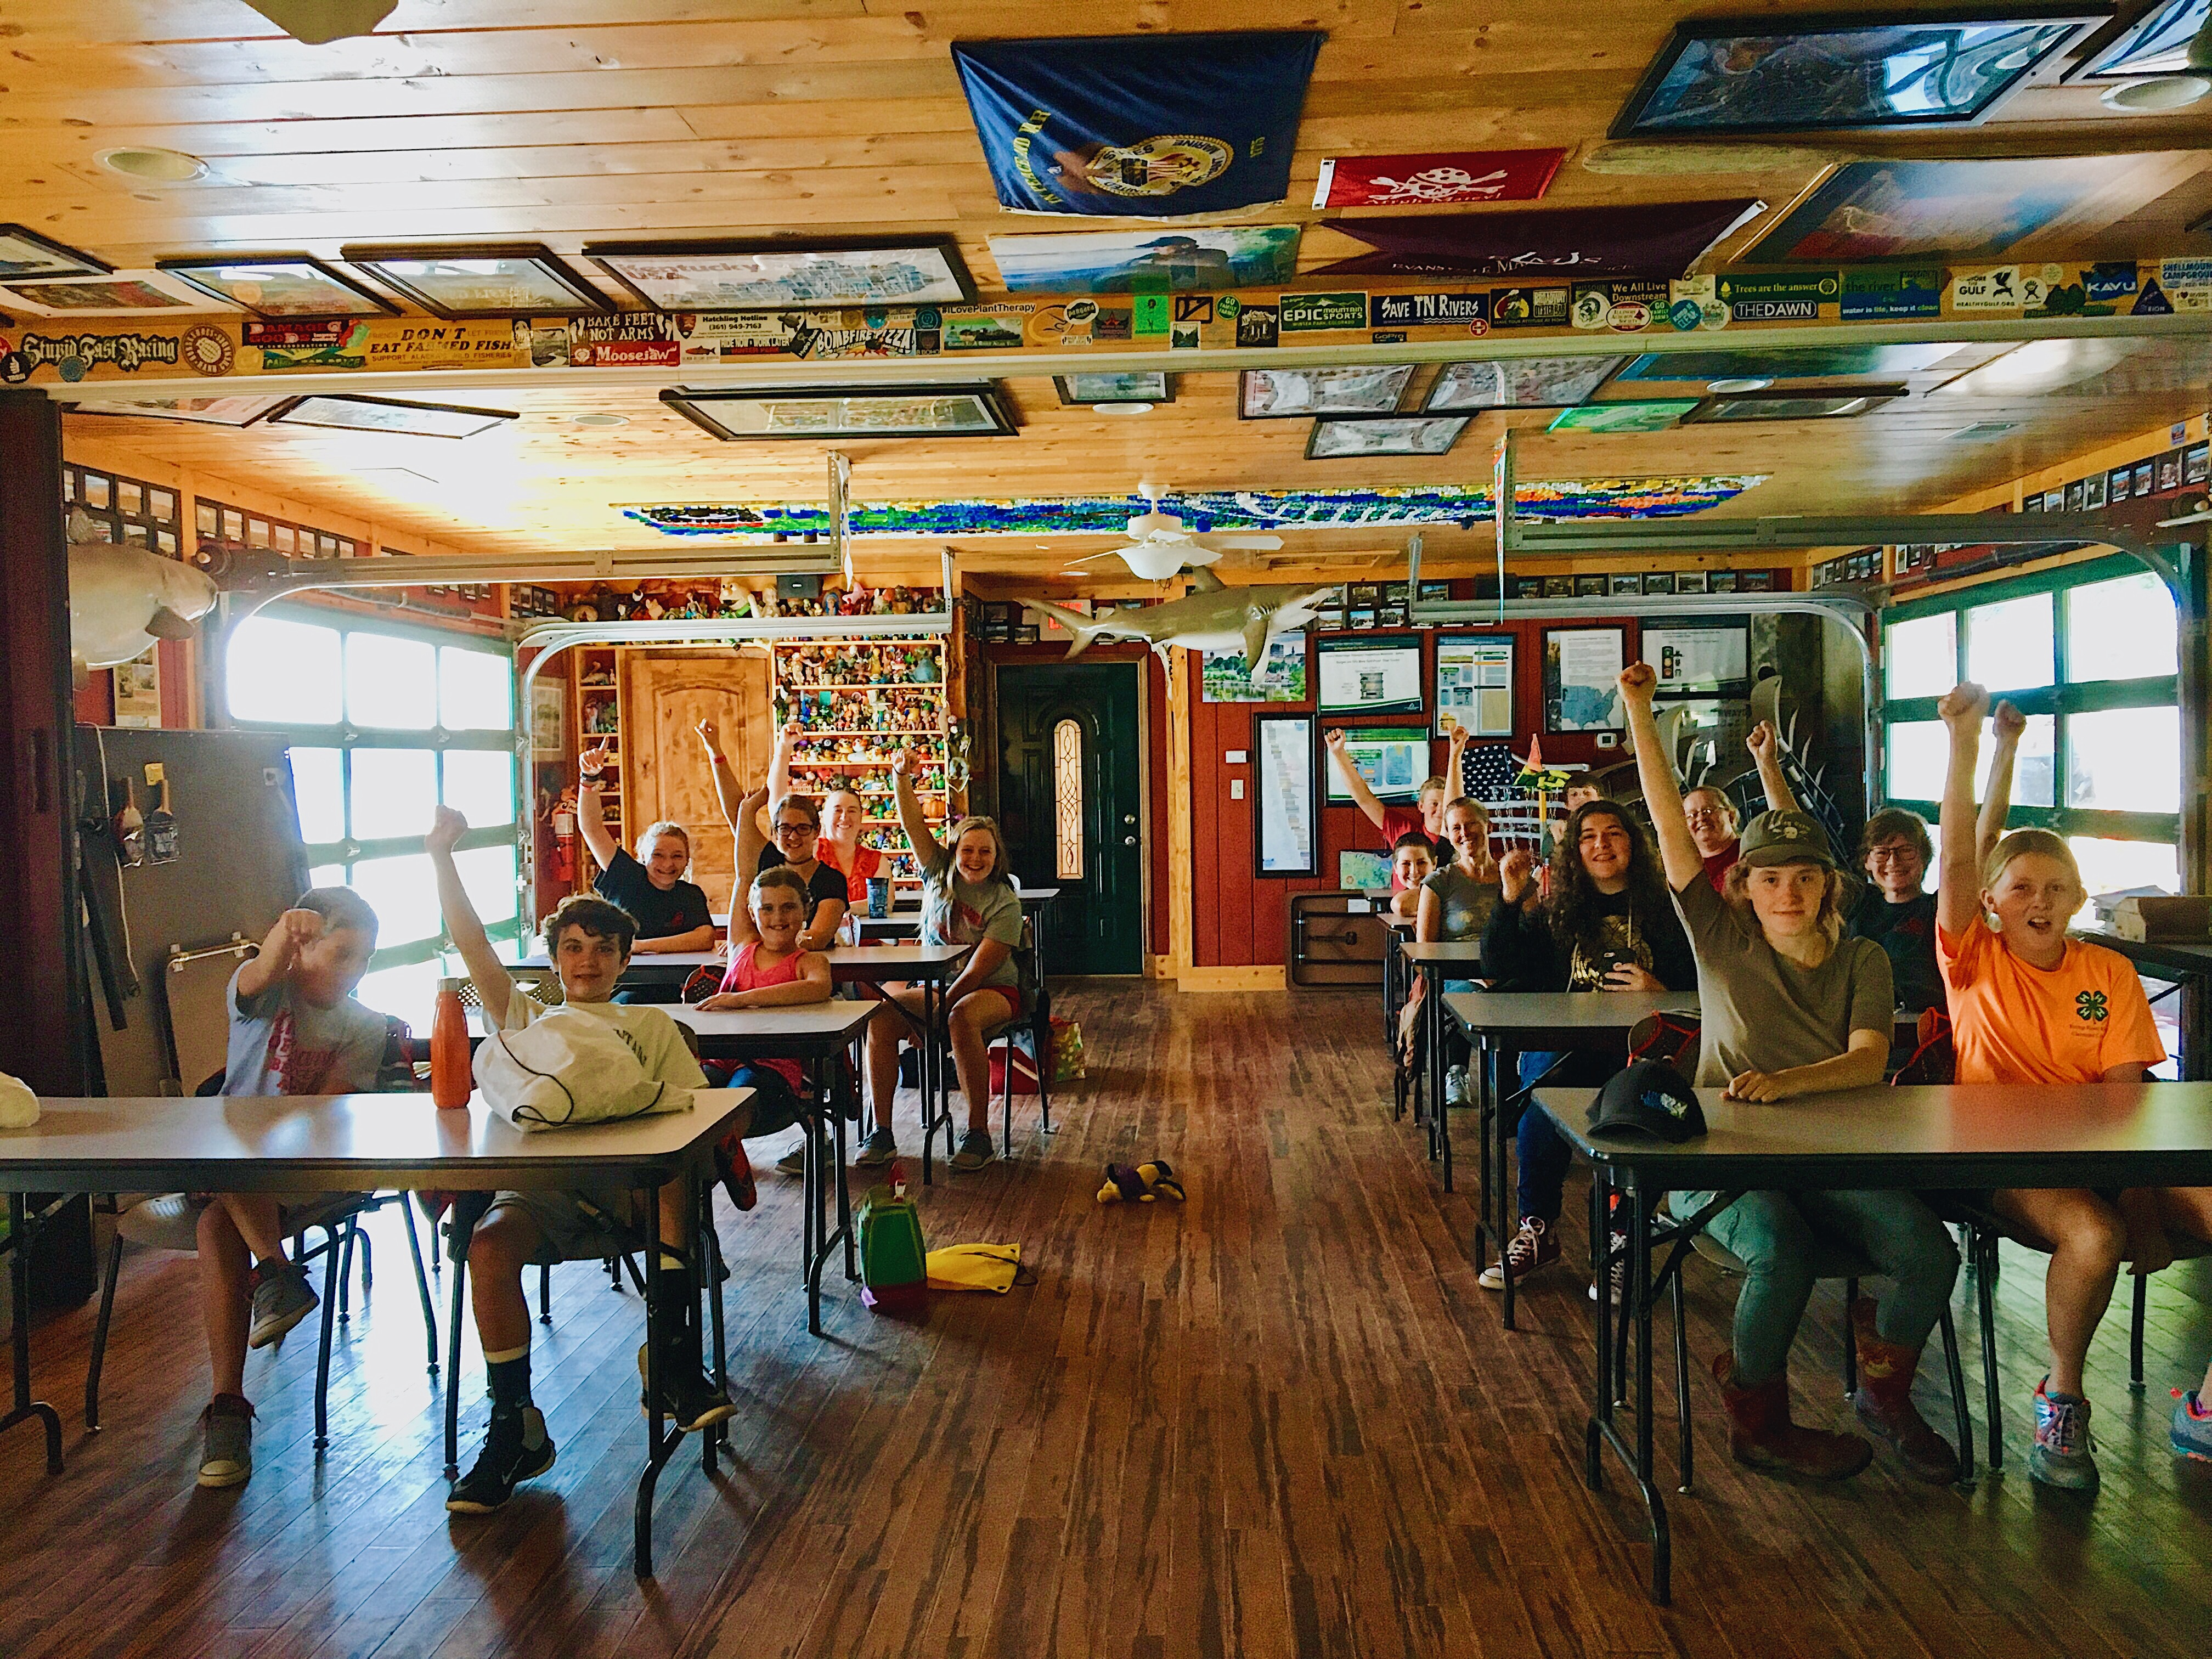 """Students and teachers alike! We have an educational opportunity waiting for you in our """"floating classroom."""""""